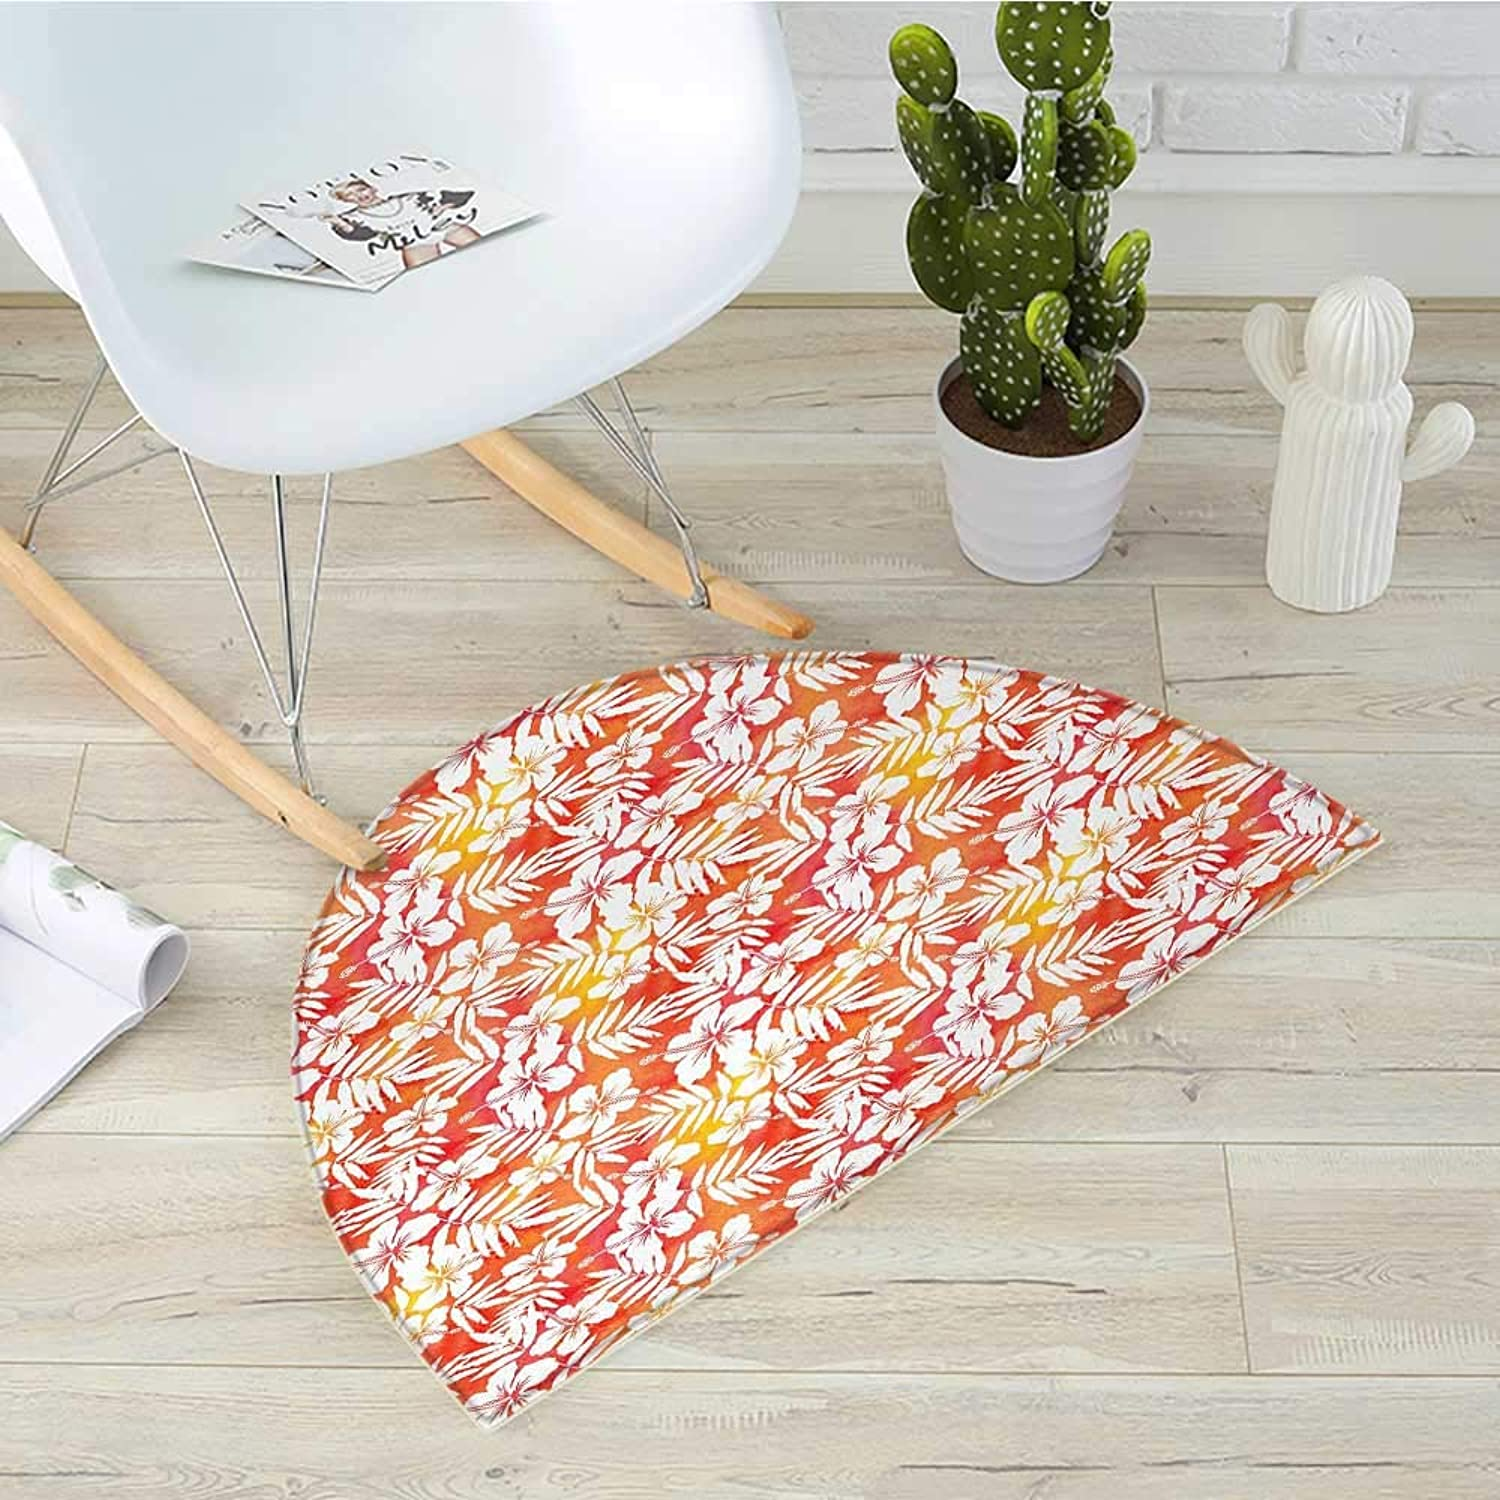 orange Half Round Door mats Fantasy Watercolor Backdrop with White Hibiscus Blossoms Leaves Aloha Jungle Bathroom Mat H 39.3  xD 59  Yellow Coral White